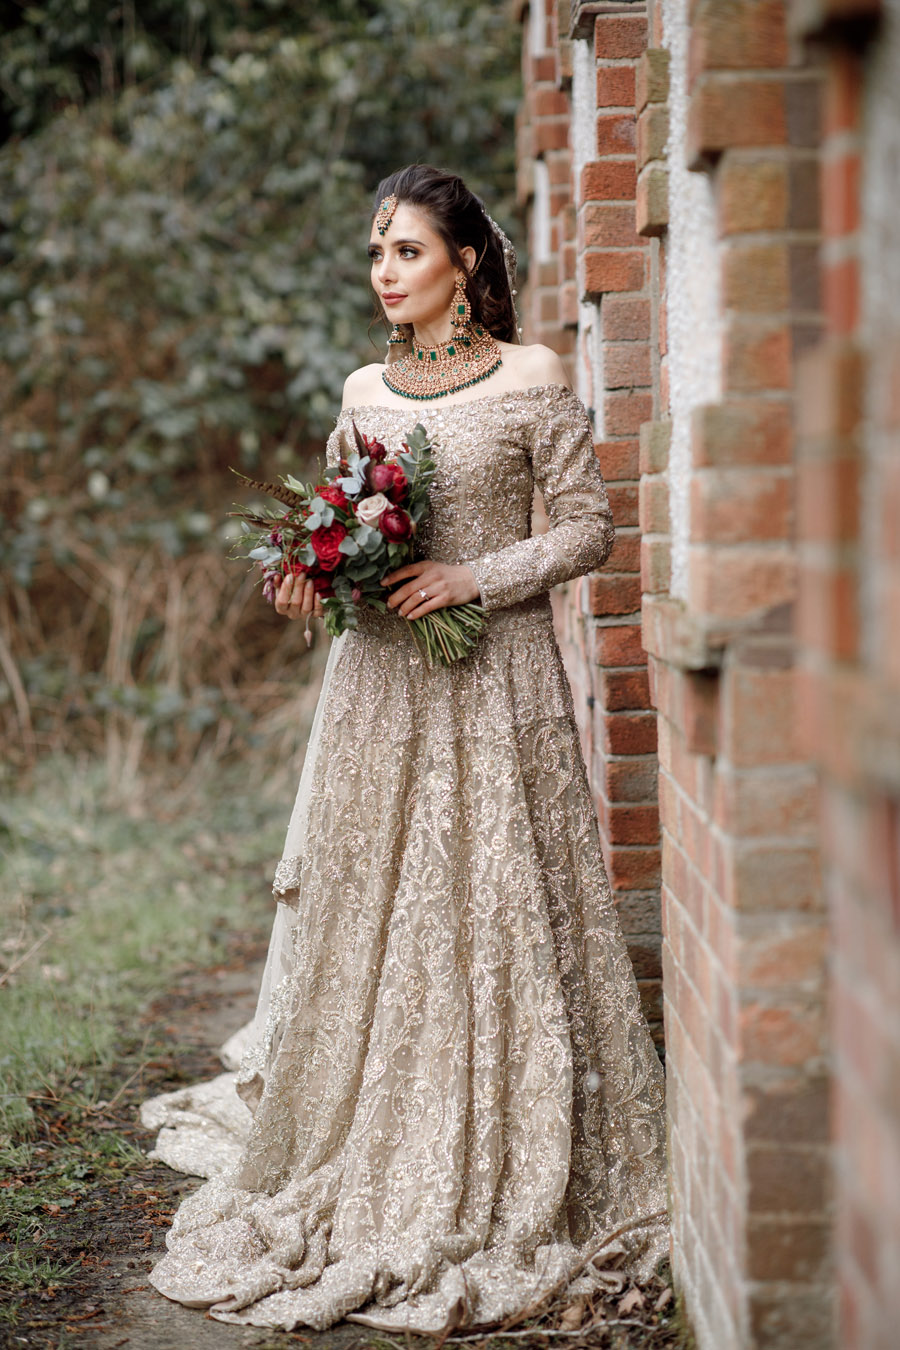 Asian wedding styling ideas on the English Wedding Blog with The Wedding Fairy and Zehra Jagani Photographer (37)